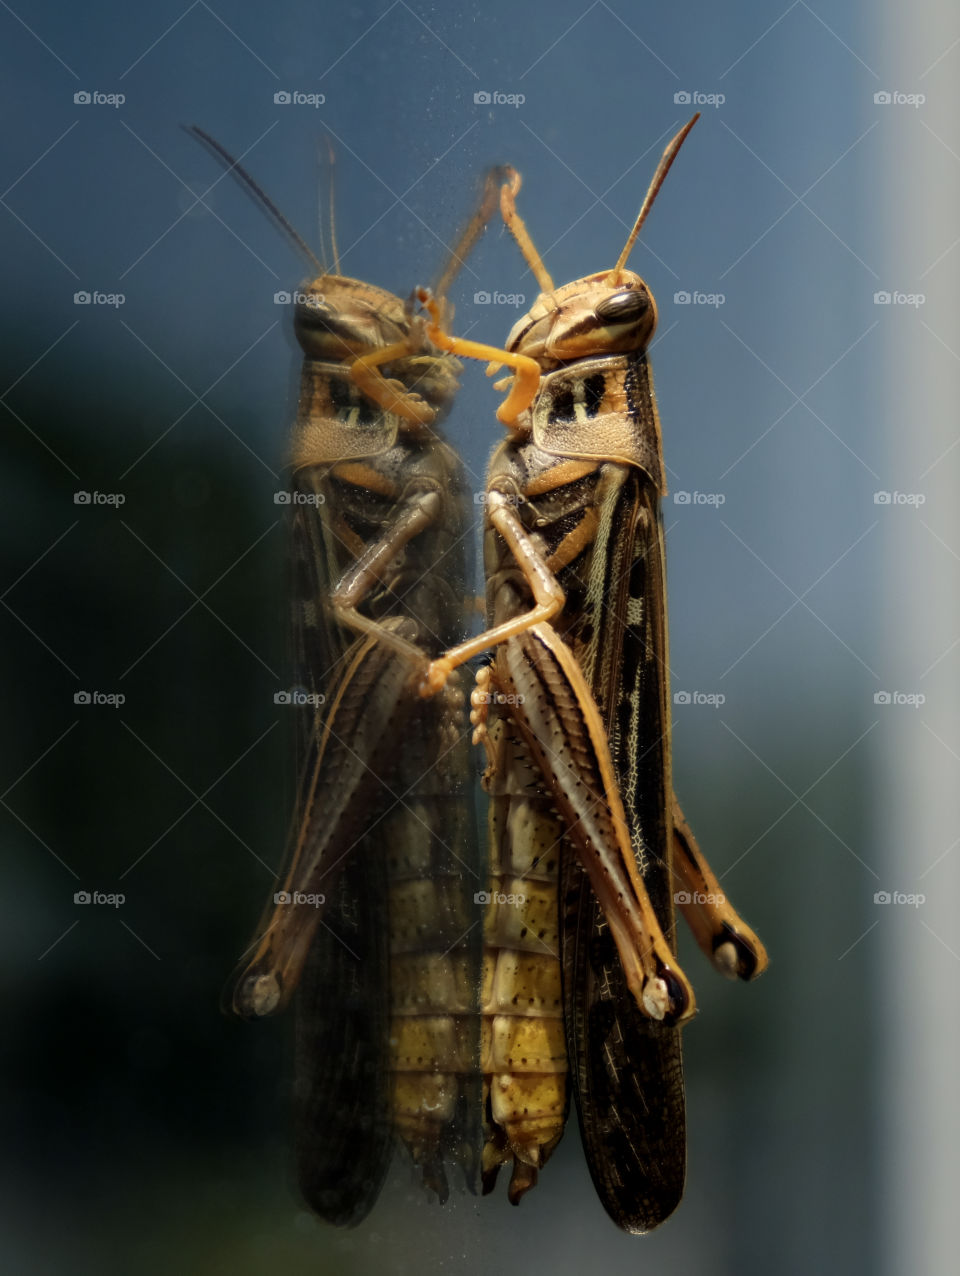 A large birdwing or bird grasshopper peering in a window, with its reflection looking back. Raleigh North Carolina.